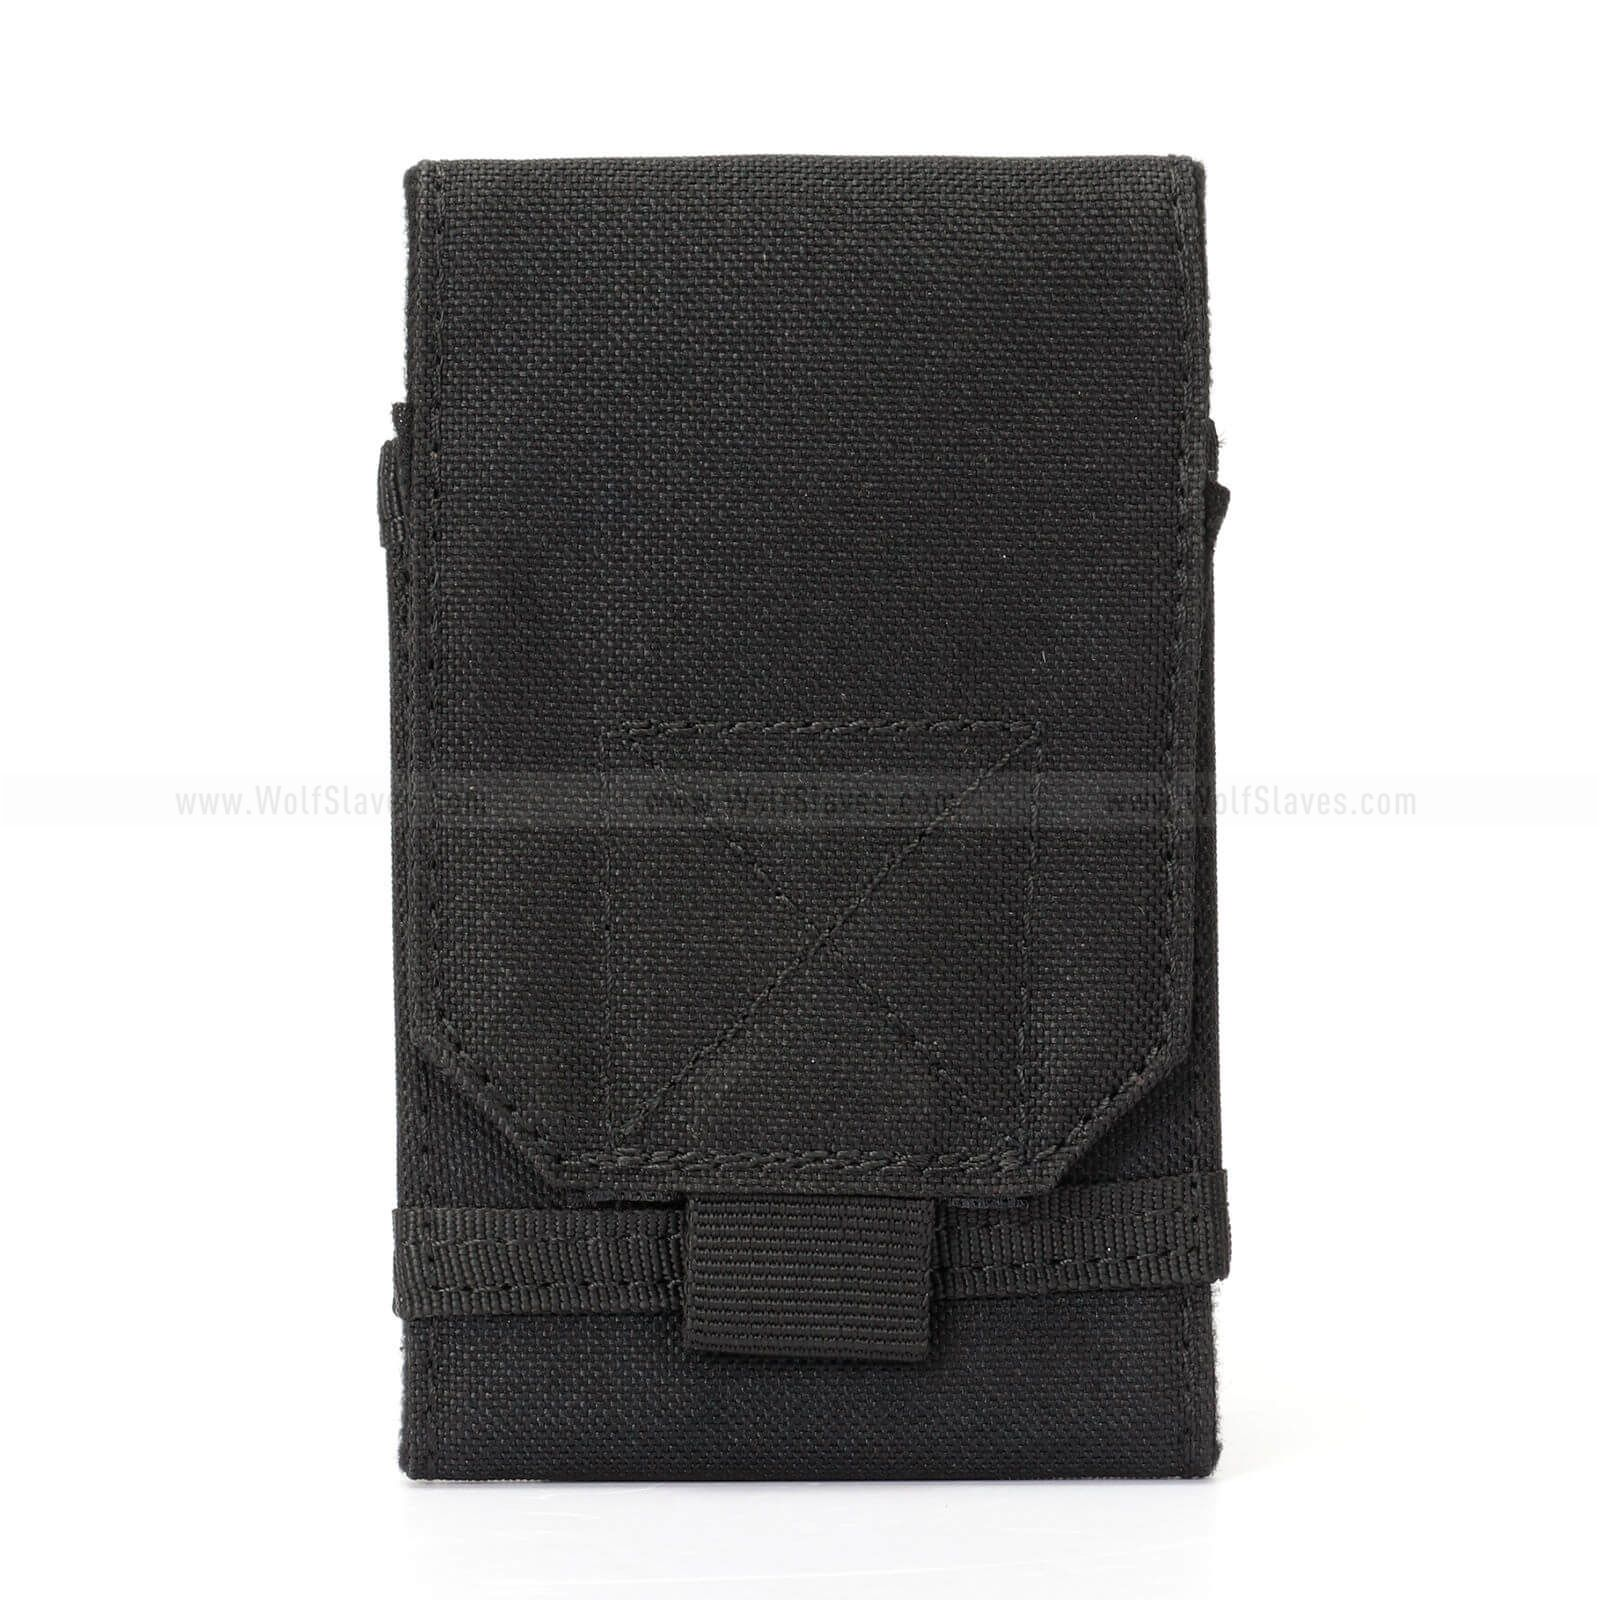 f88e1dc50fc5 Tactical Molle Mobile Phone Belt Pouch EDC Securtiy Pack Small Waist Case